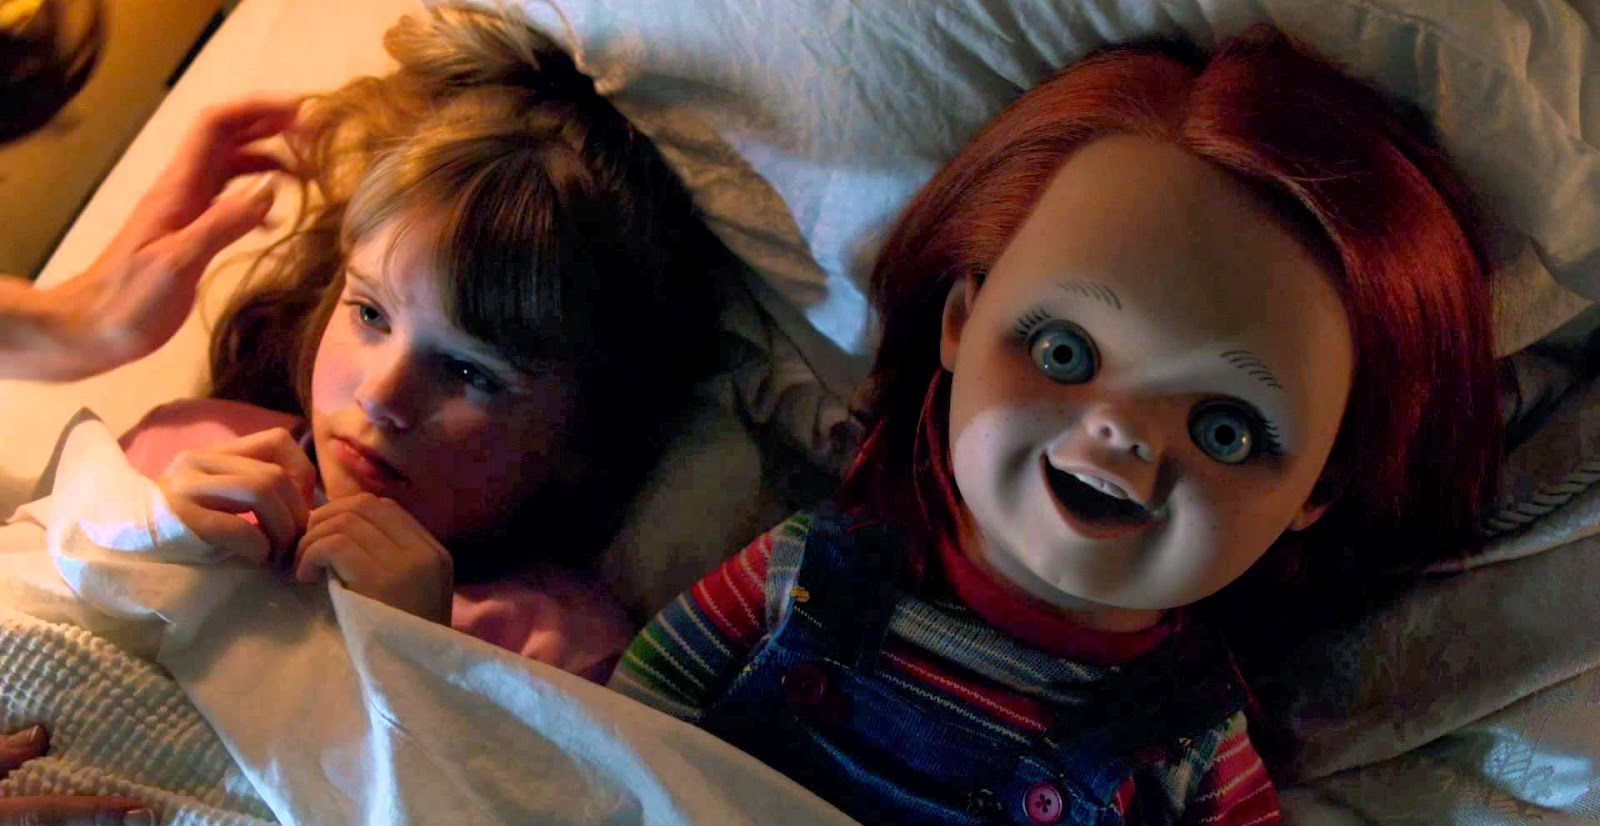 Best 20 Horror films - Chucky